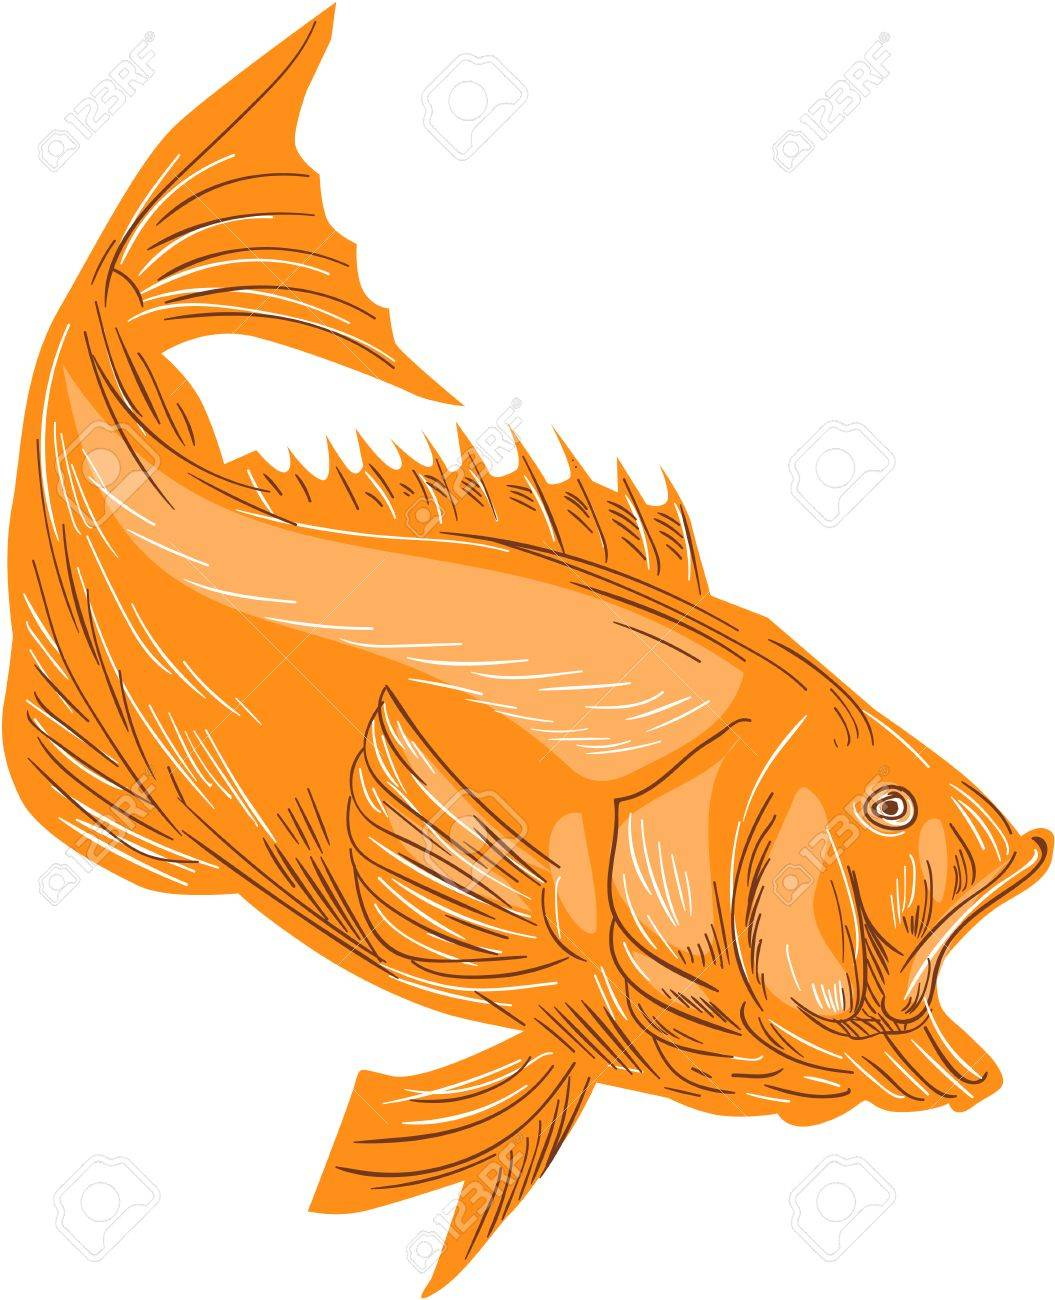 Drawing Sketch Style Illustration Of A Largemouth Bass Fish Diving